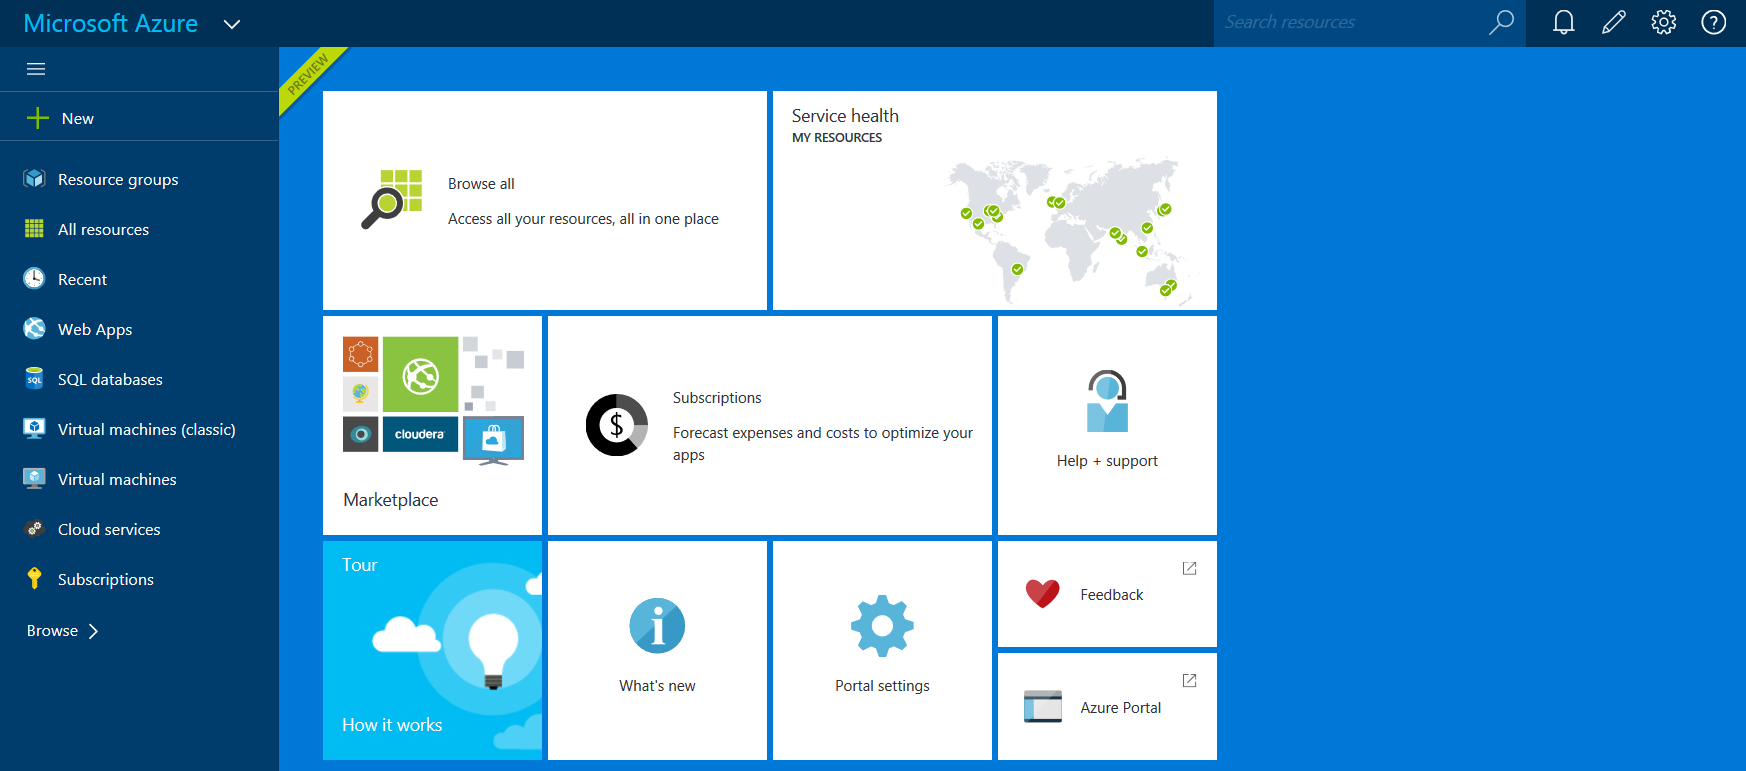 Getting Live Data from Twitter and Storing in Azure Blob